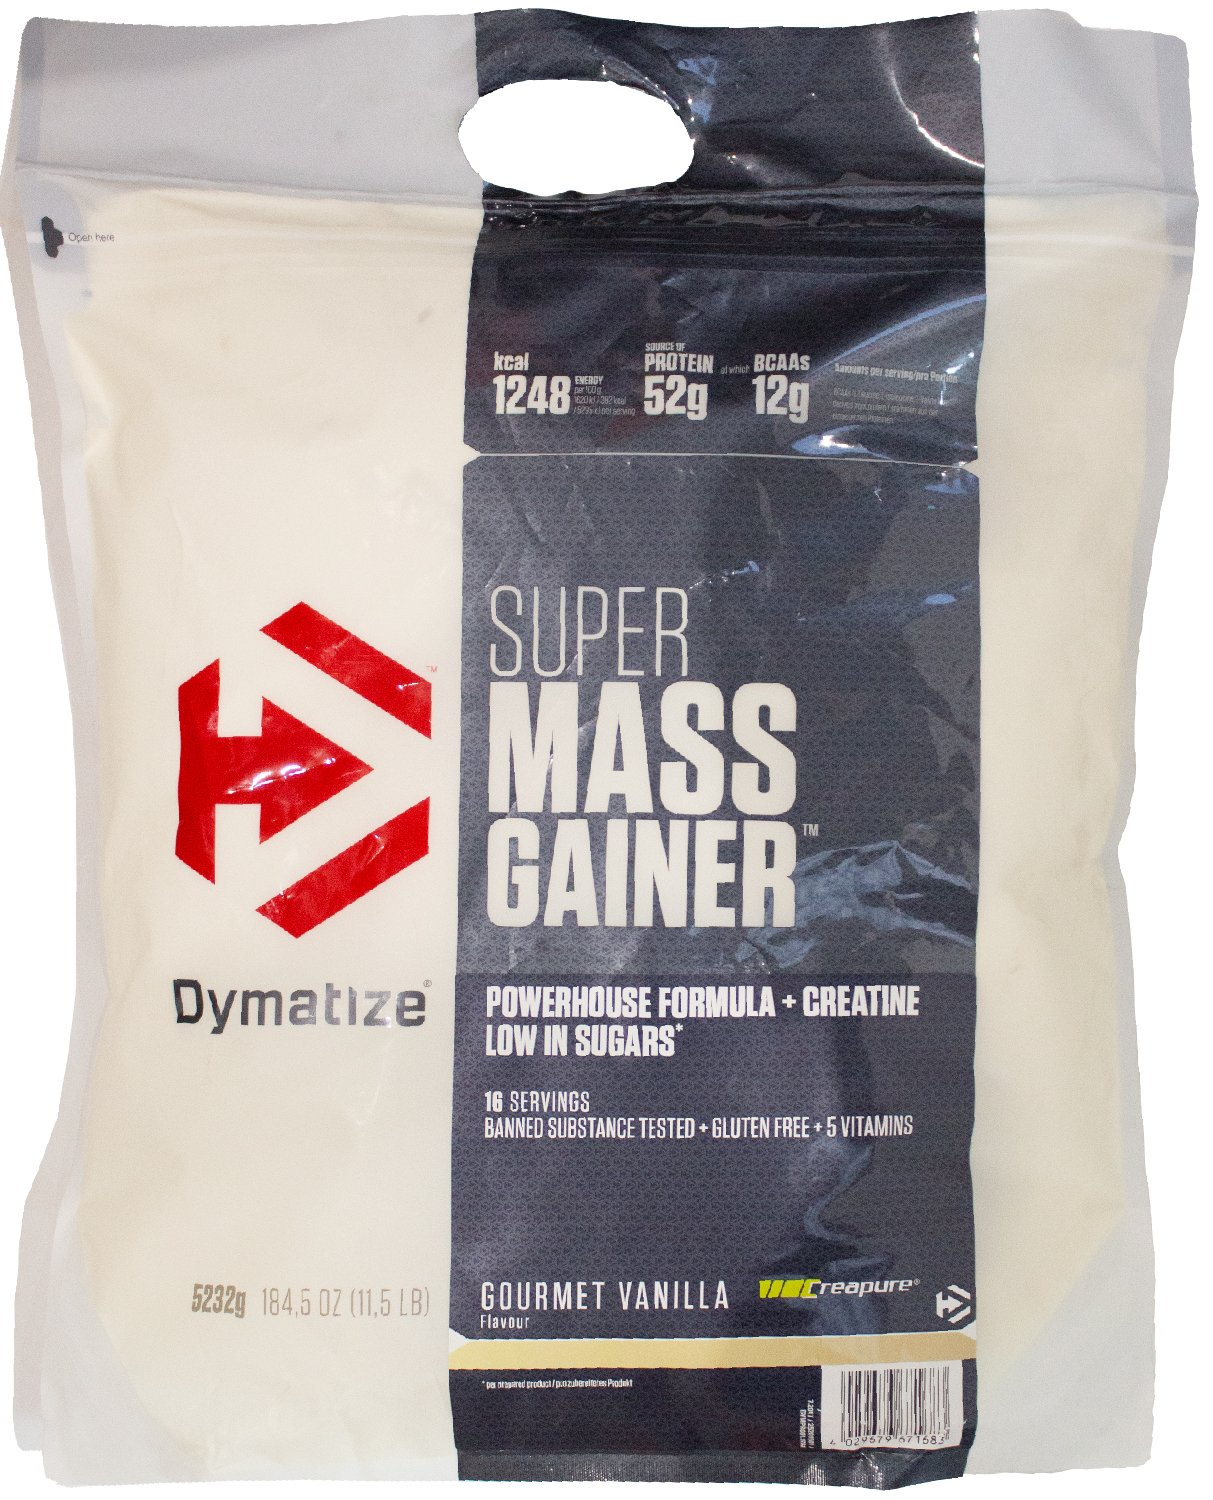 Super Mass Gainer 5.2kg